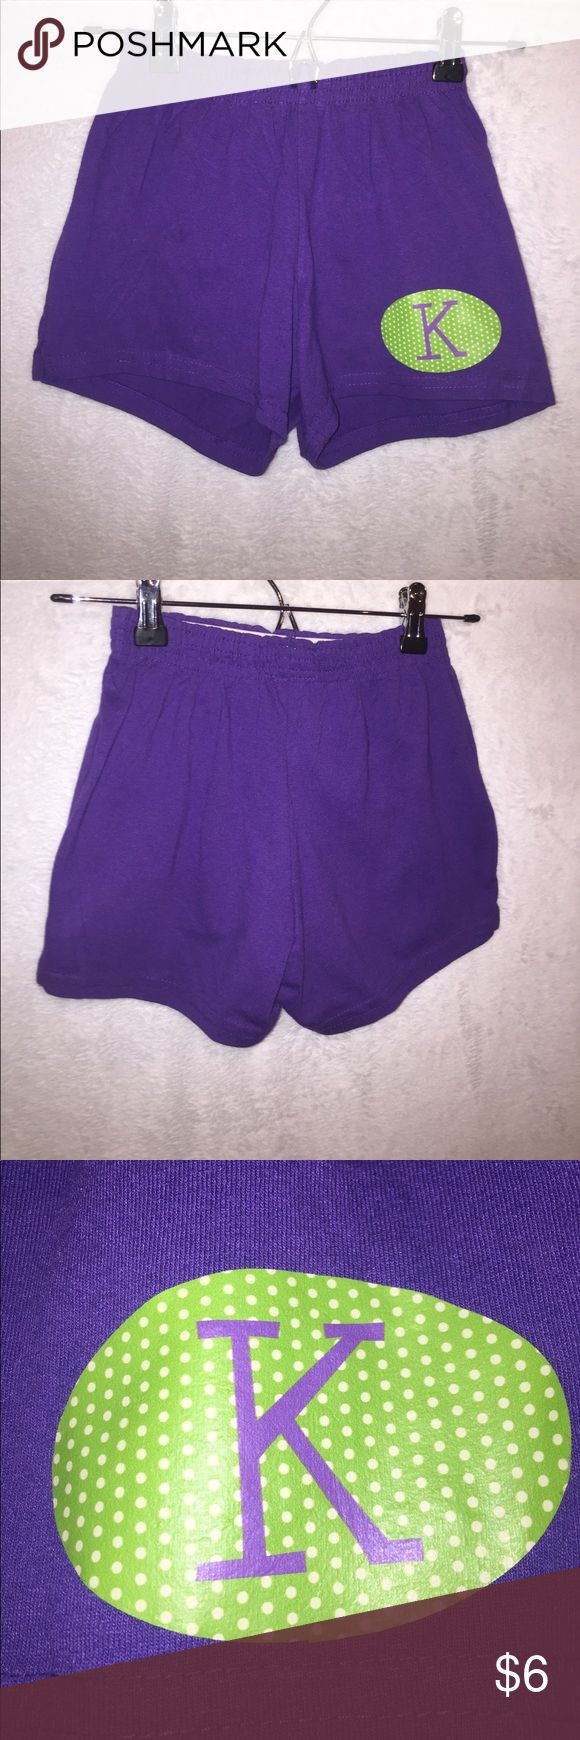 Purple Monogrammed Athletic Shorts Purple athletic shorts with monogrammed K, green oval around with white polka dots. Girls L, also fits Women's XS. From Augusta Sportswear. Excellent condition, never worn! :) Augusta Sportswear Bottoms Shorts